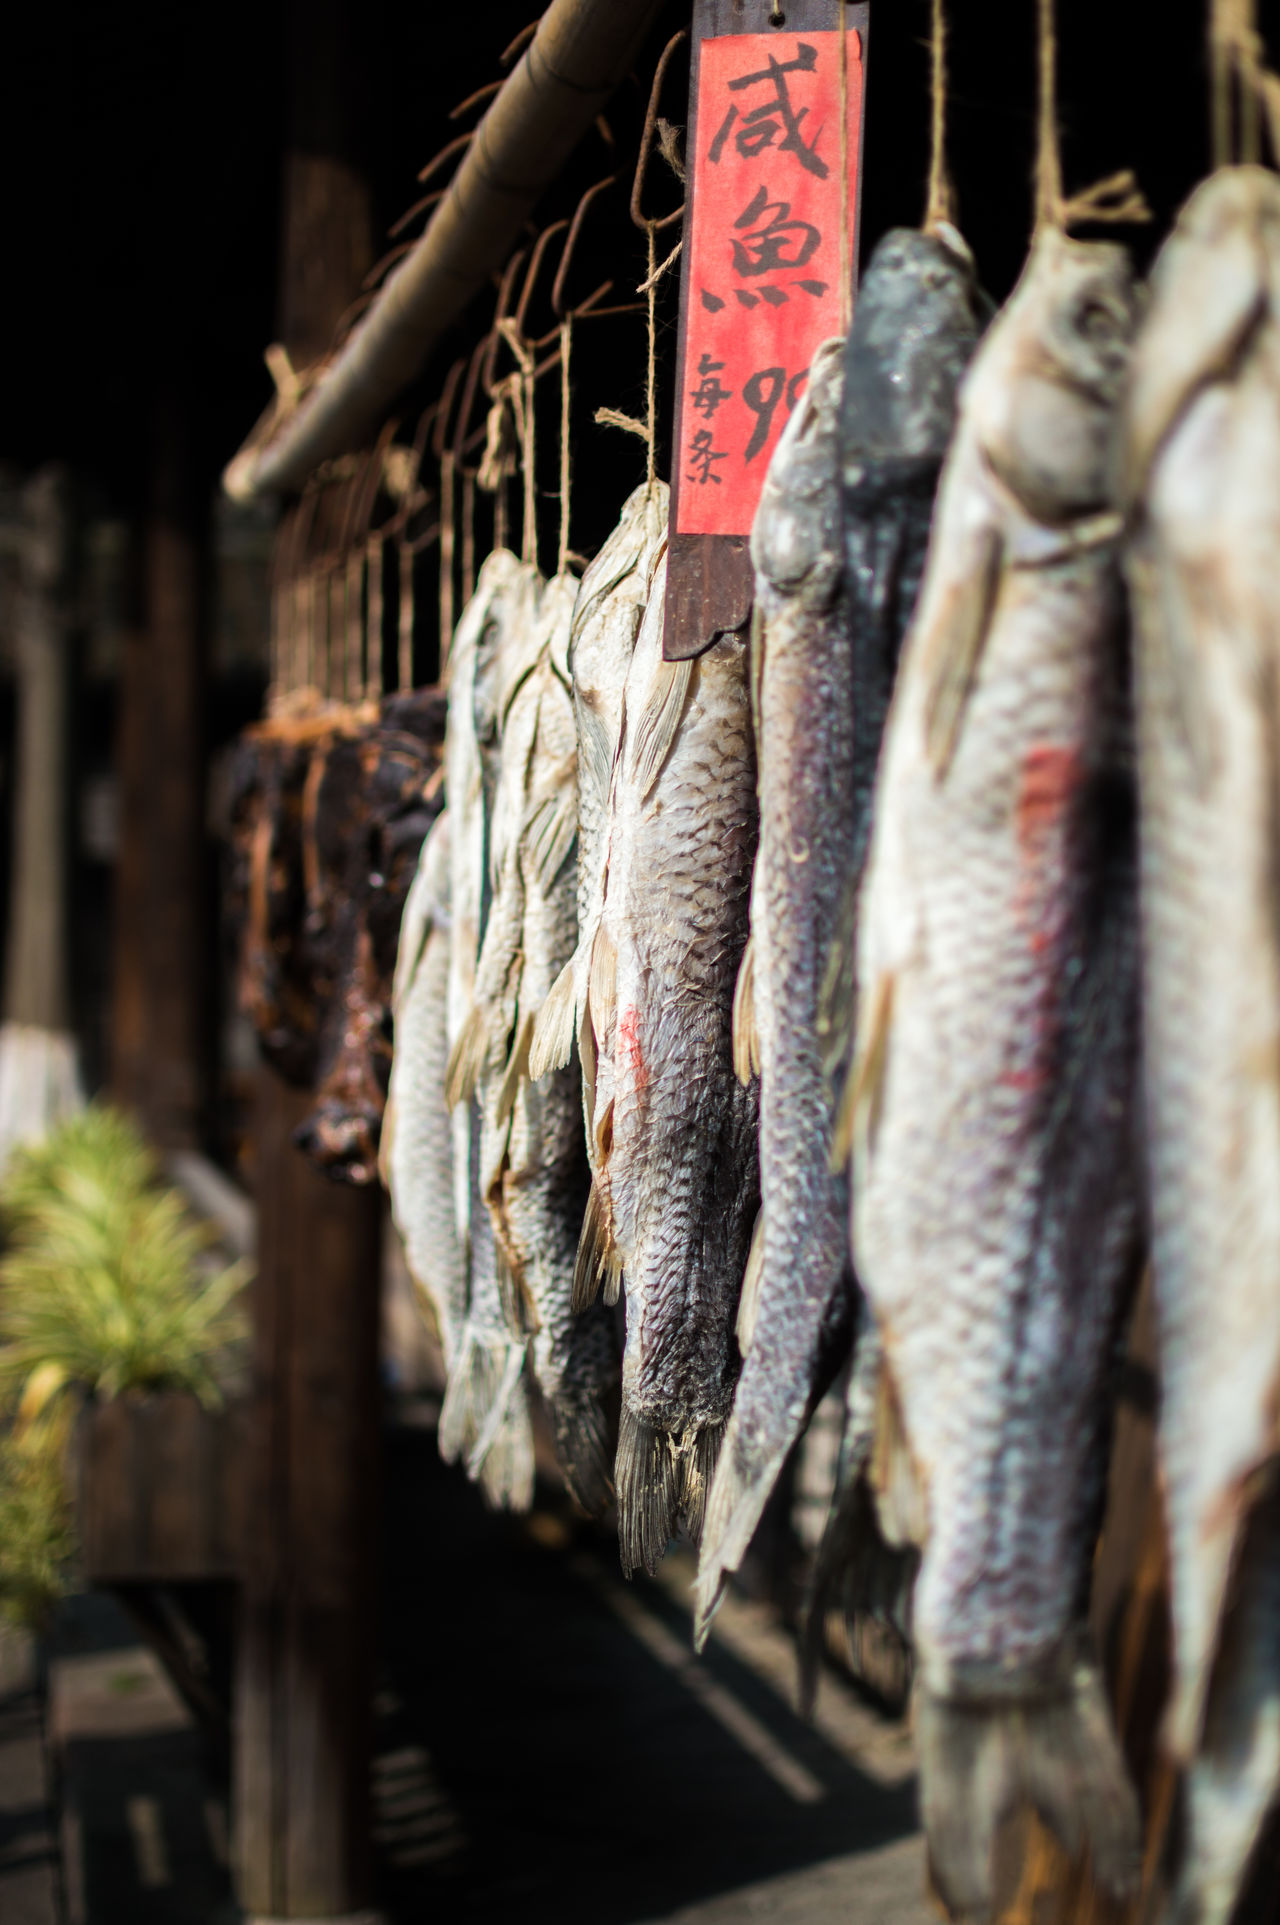 Salty fish, 99 cents each Business Finance And Industry Close-up Cultures Day Fish Hanging Market Market Stall No People Outdoors Retail